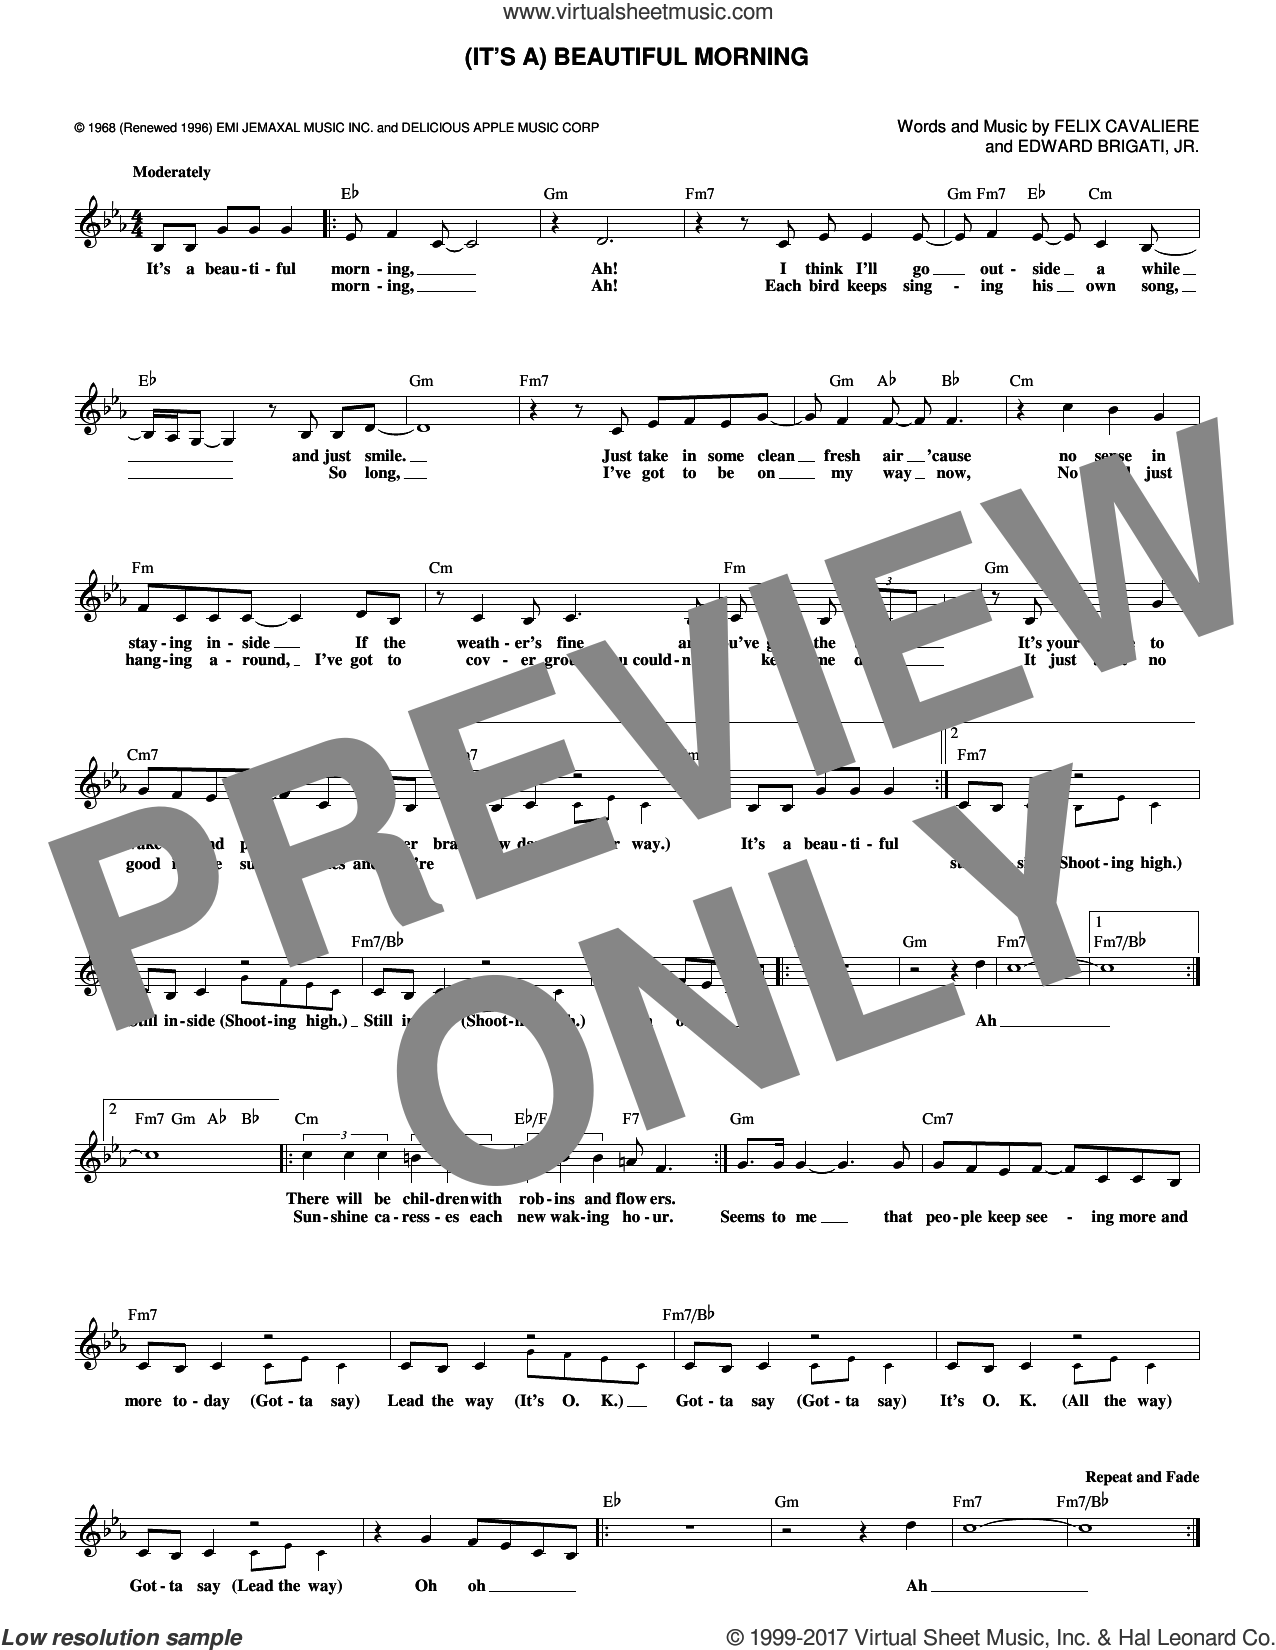 (It's A) Beautiful Morning sheet music for voice and other instruments (fake book) by The Rascals, Edward Brigati, Jr. and Felix Cavaliere, intermediate skill level